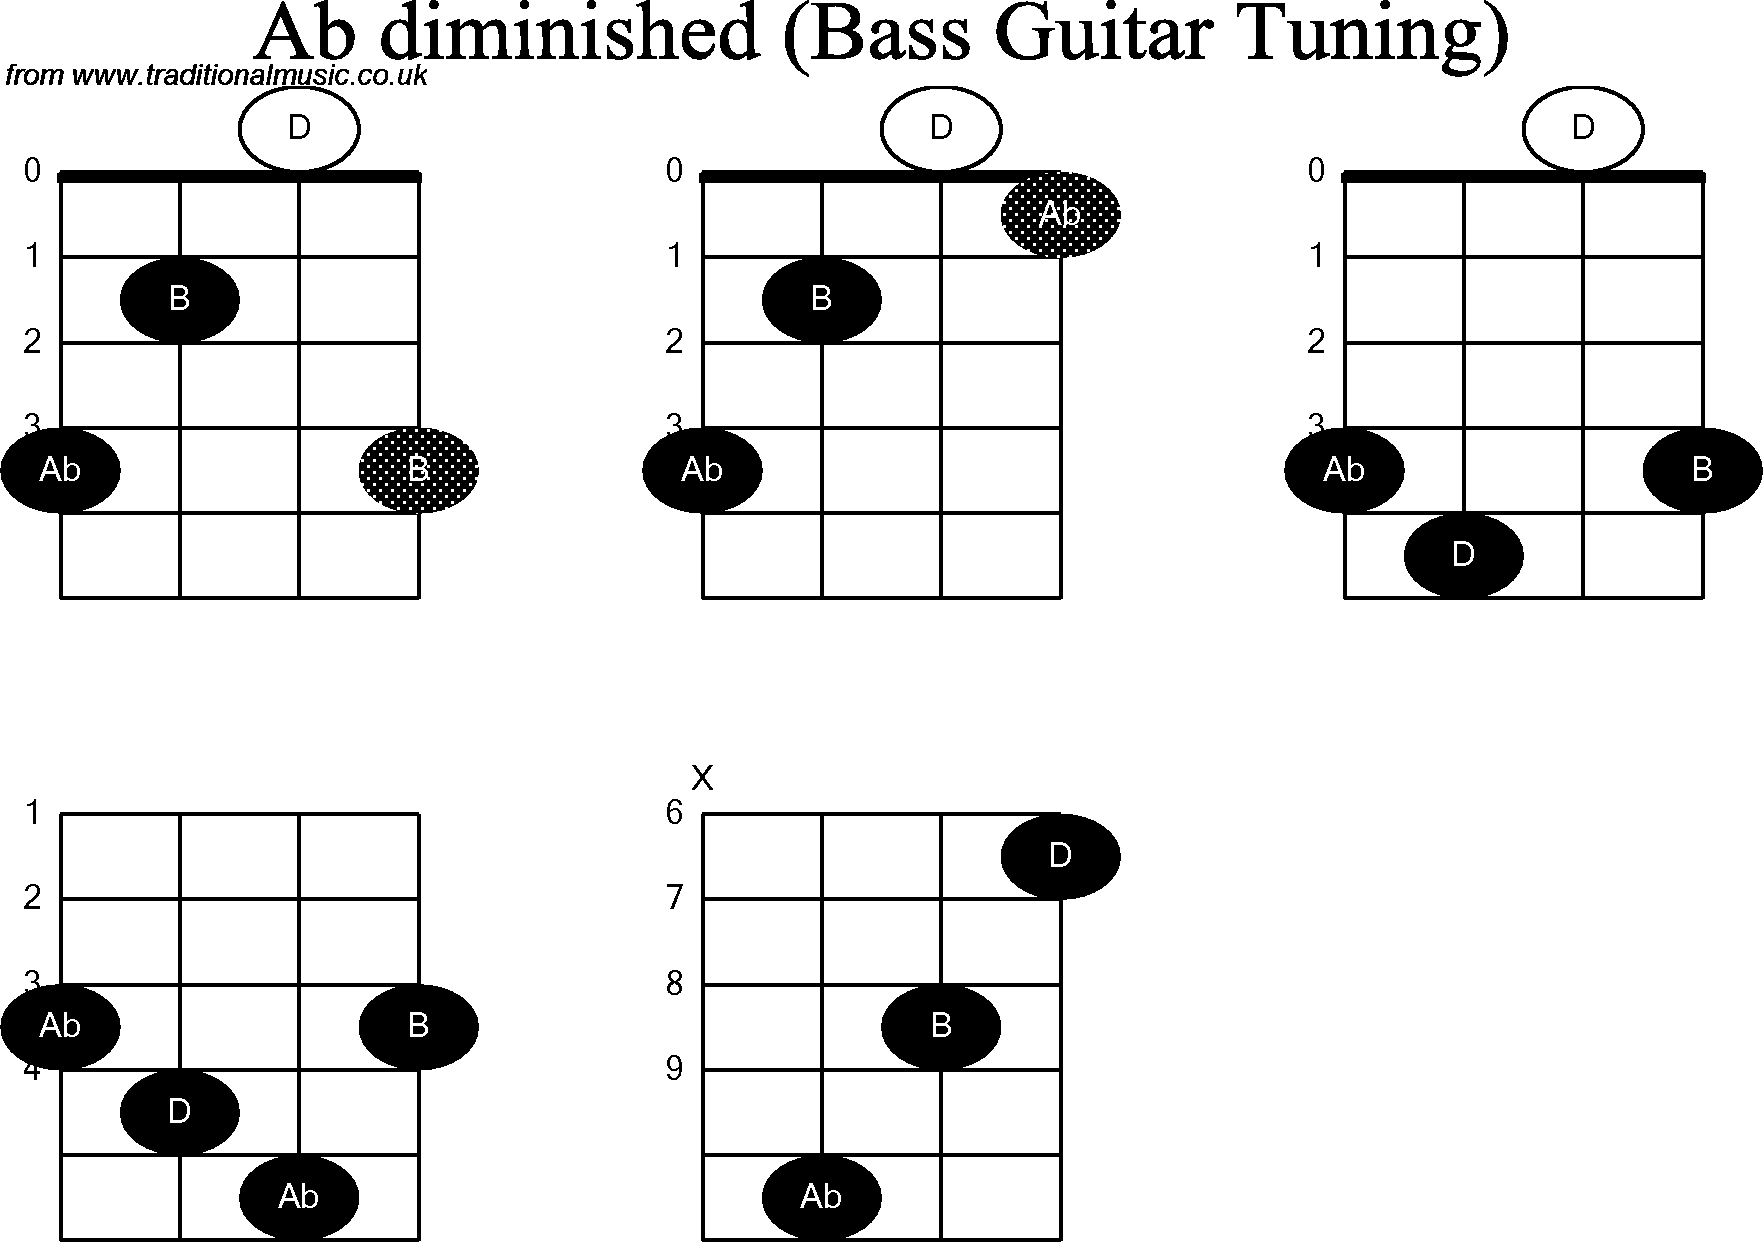 Bass Guitar Chord Diagrams For Ab Diminished